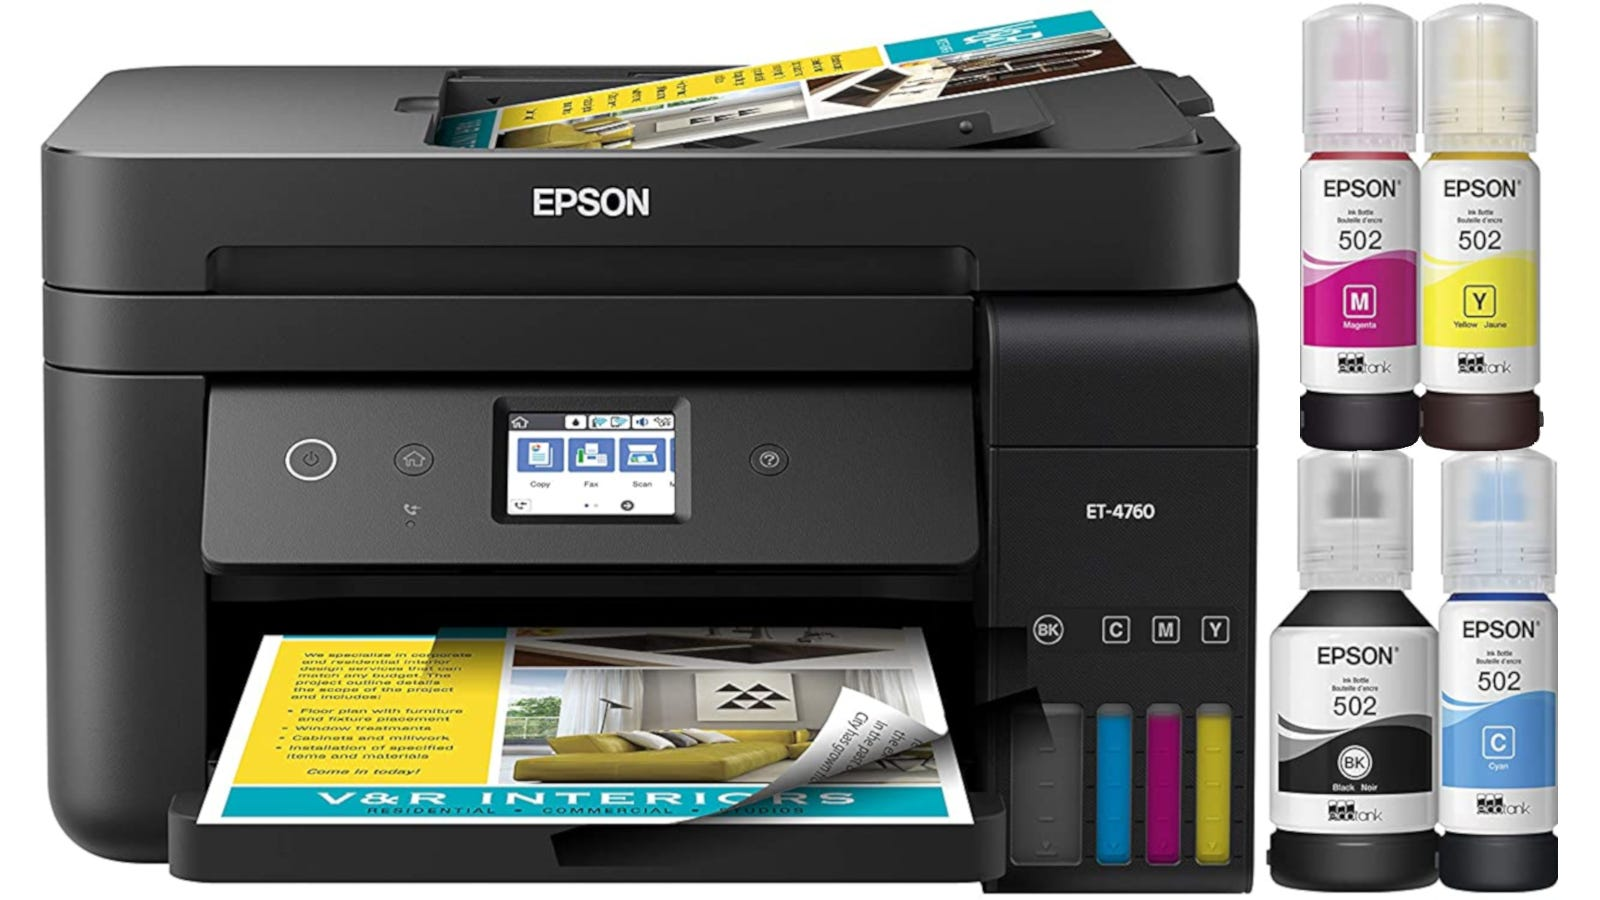 Black all-in-one printer with fax, touch screen, and cartridge-free ink system